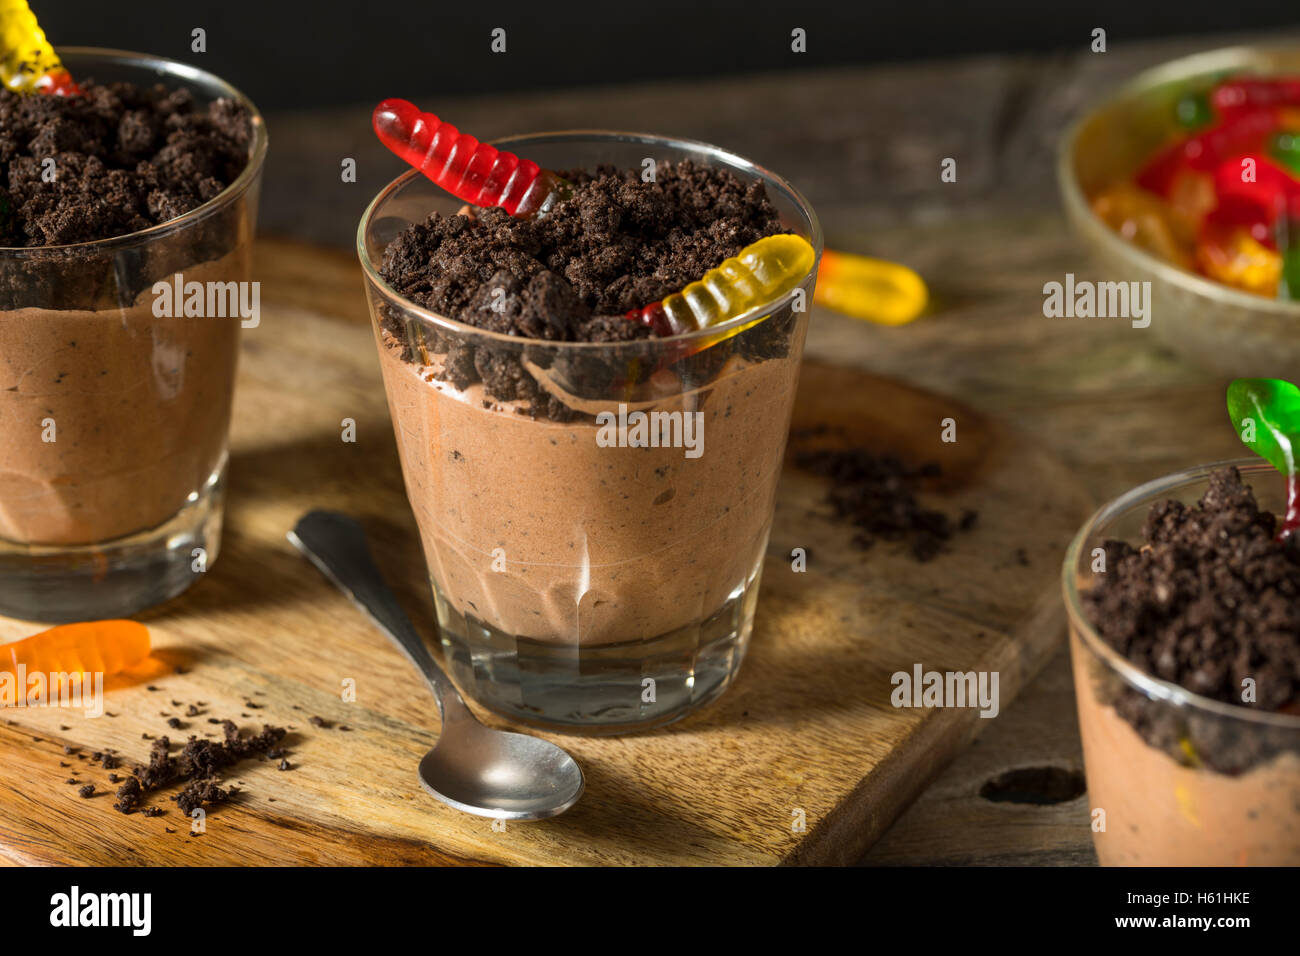 Homemade Chocolate Dirt Pudding with Gummy Worms - Stock Image